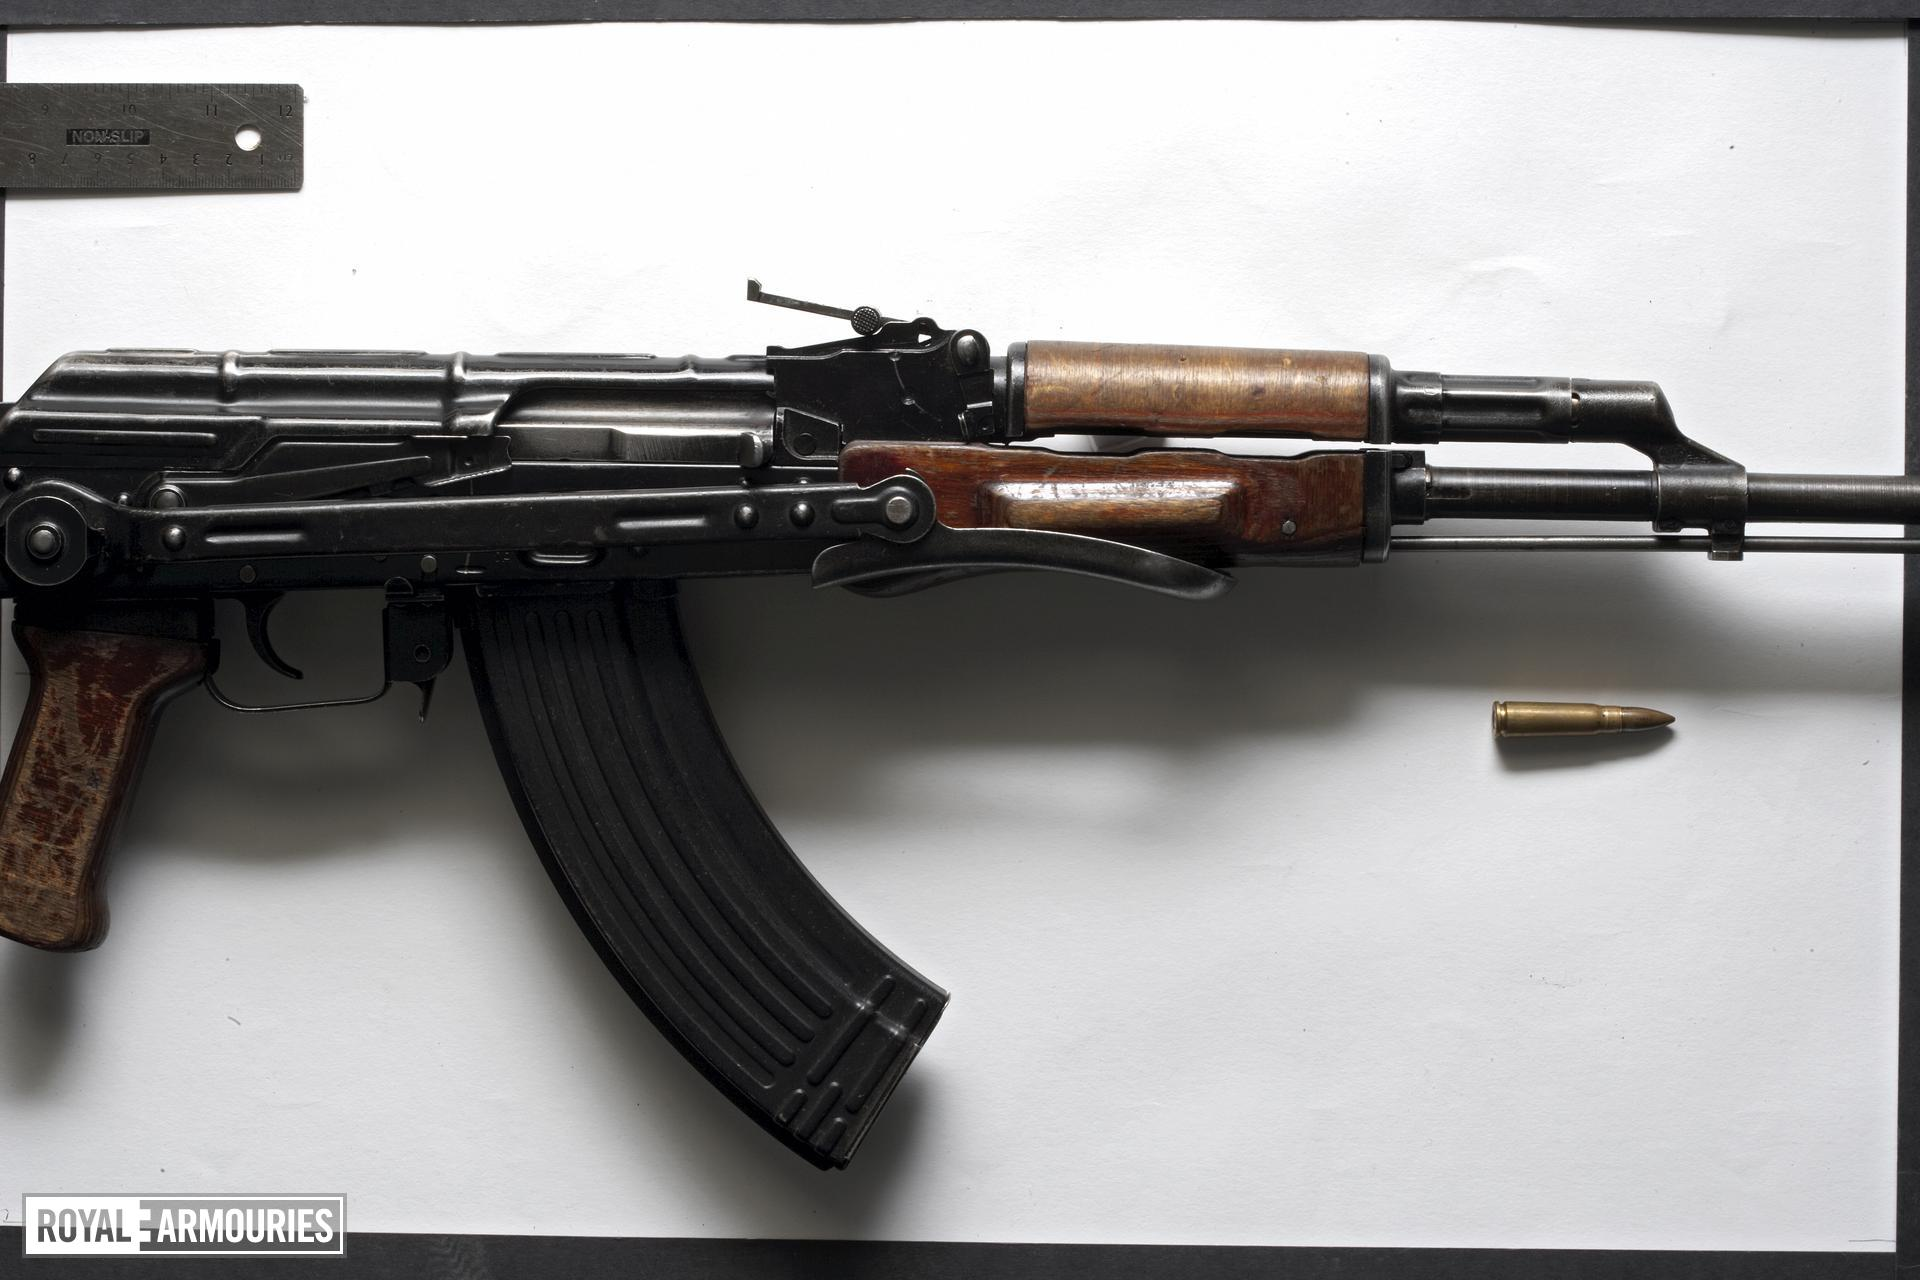 Centrefire automatic rifle - Kalashnikov AKMS Standard stamped receiver AKMS pattern rifle with folding stock.